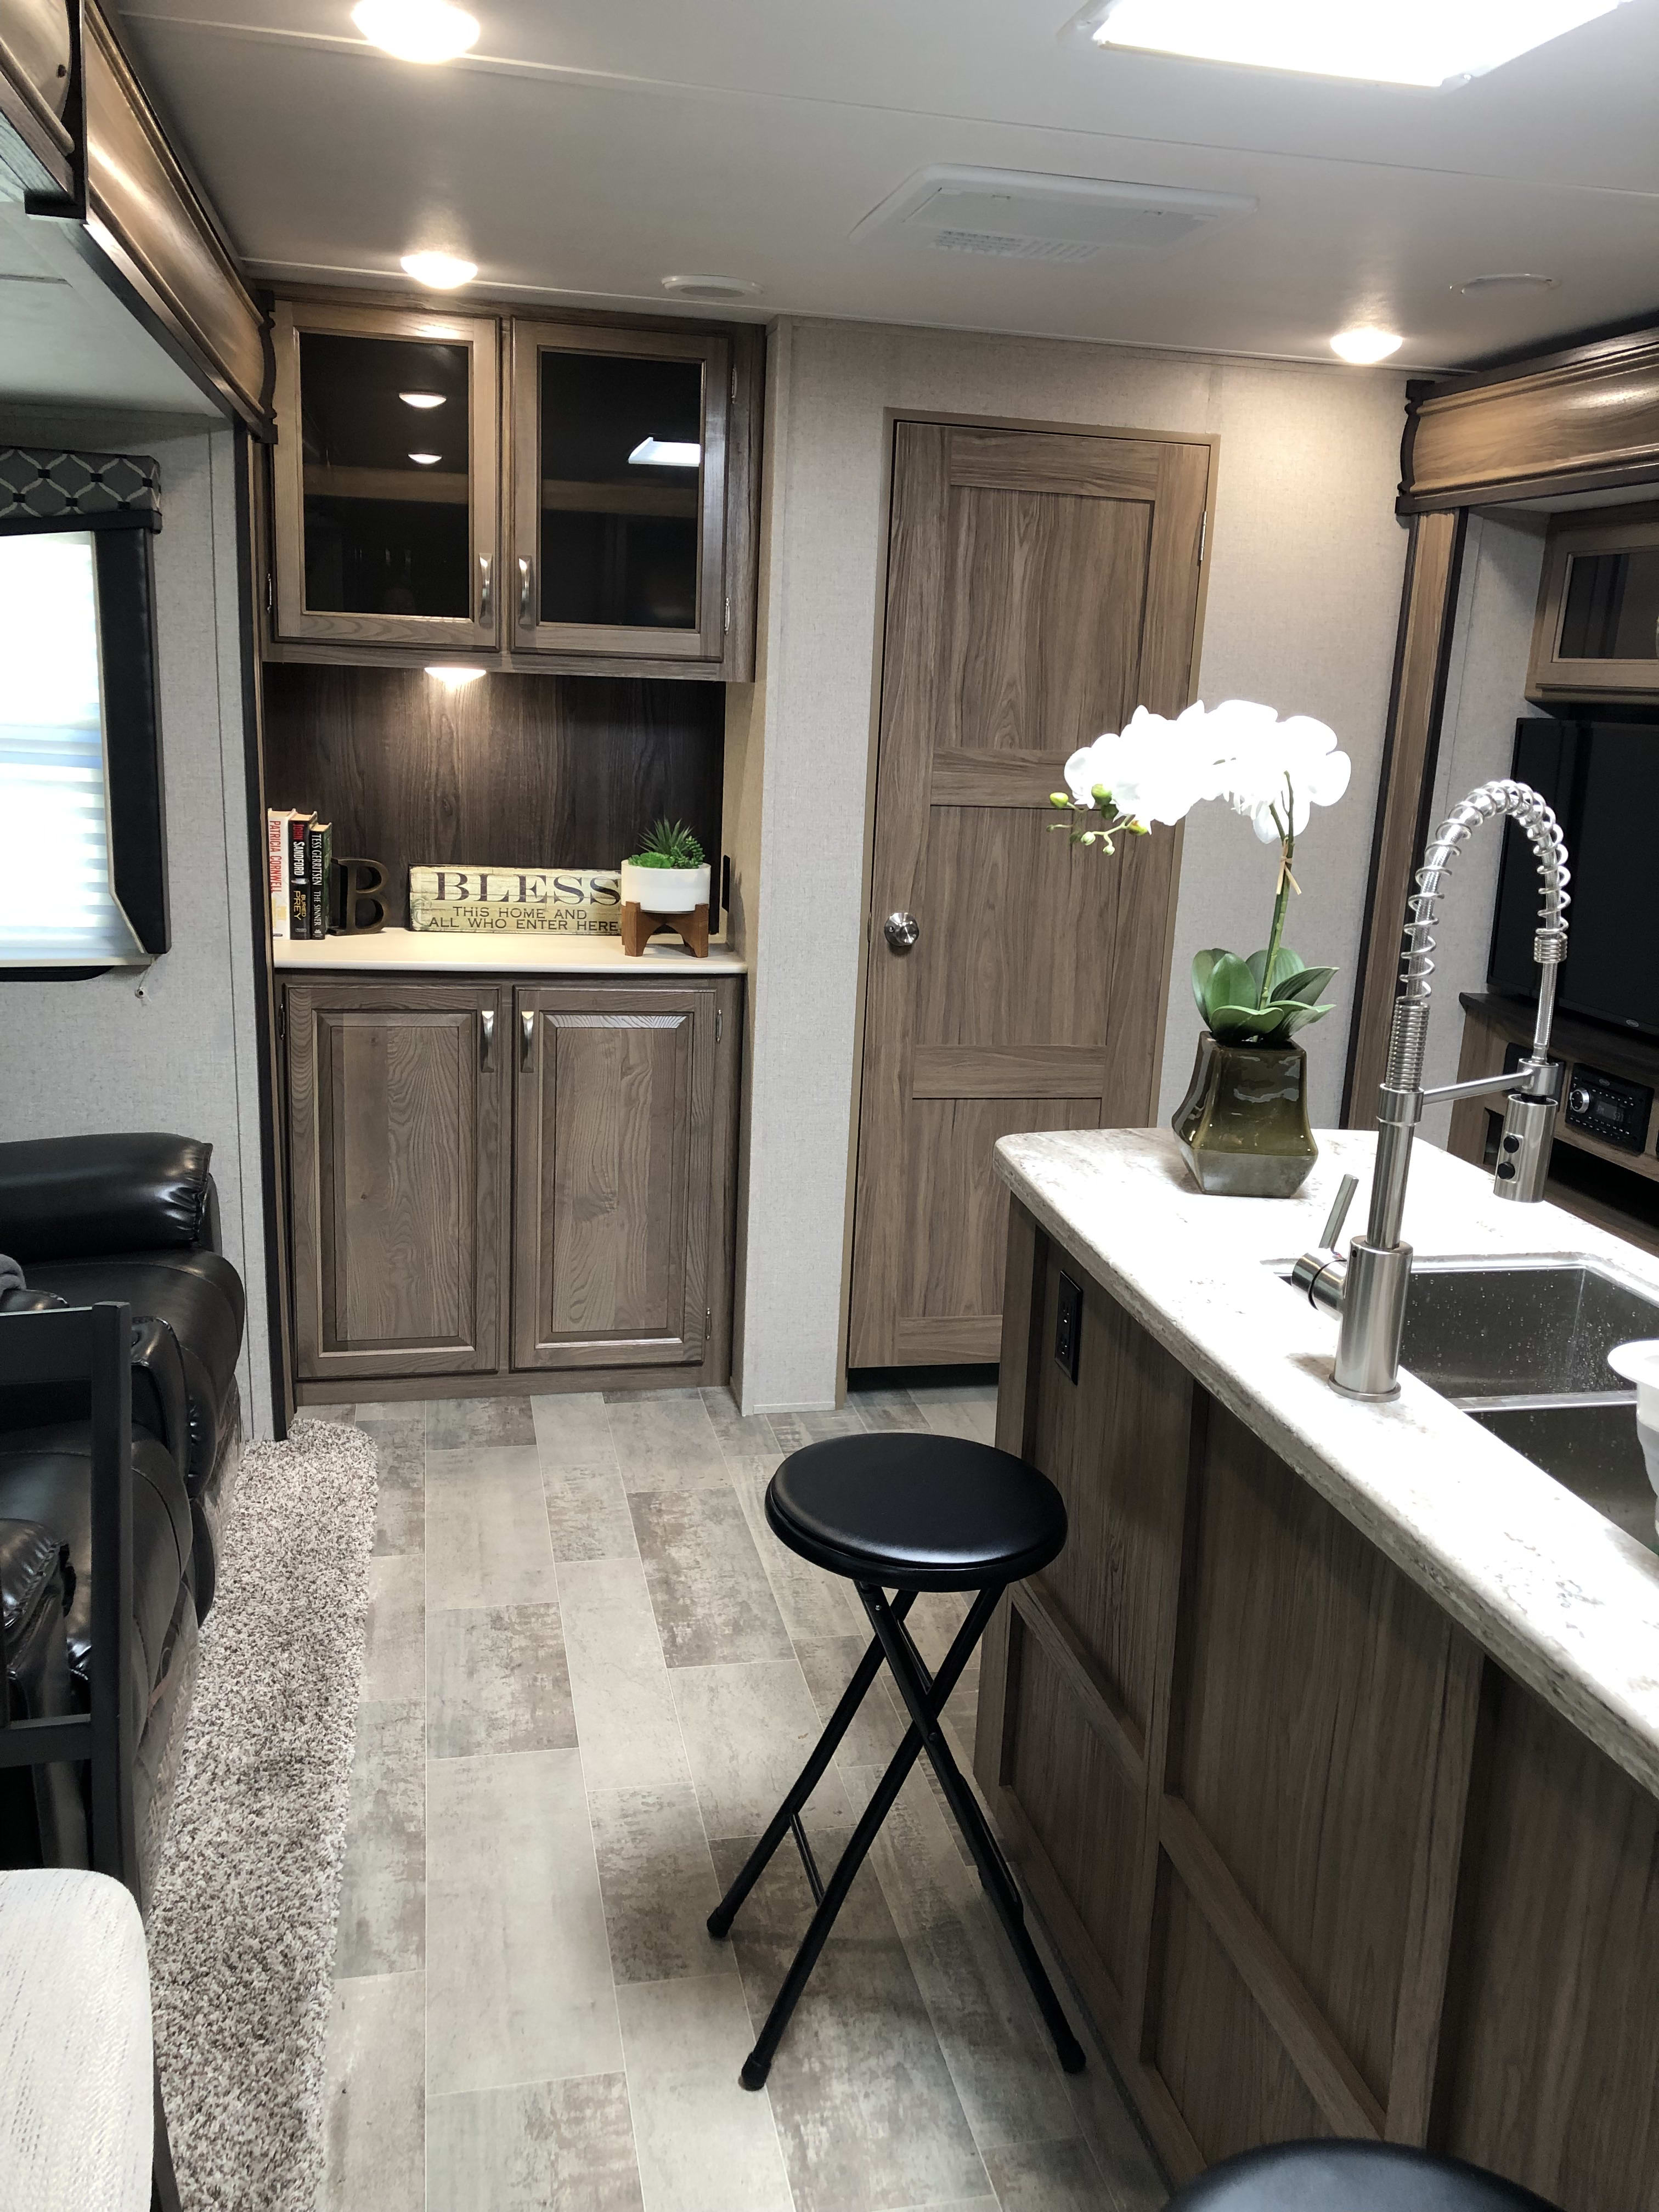 A view of the kitchen area through the RV toward the bunkhouse.  Our RV offers a spacious kitchen with island, roomy dining area with seating for 4 at the table and two at the island.. Dutchmen Atlas 2019